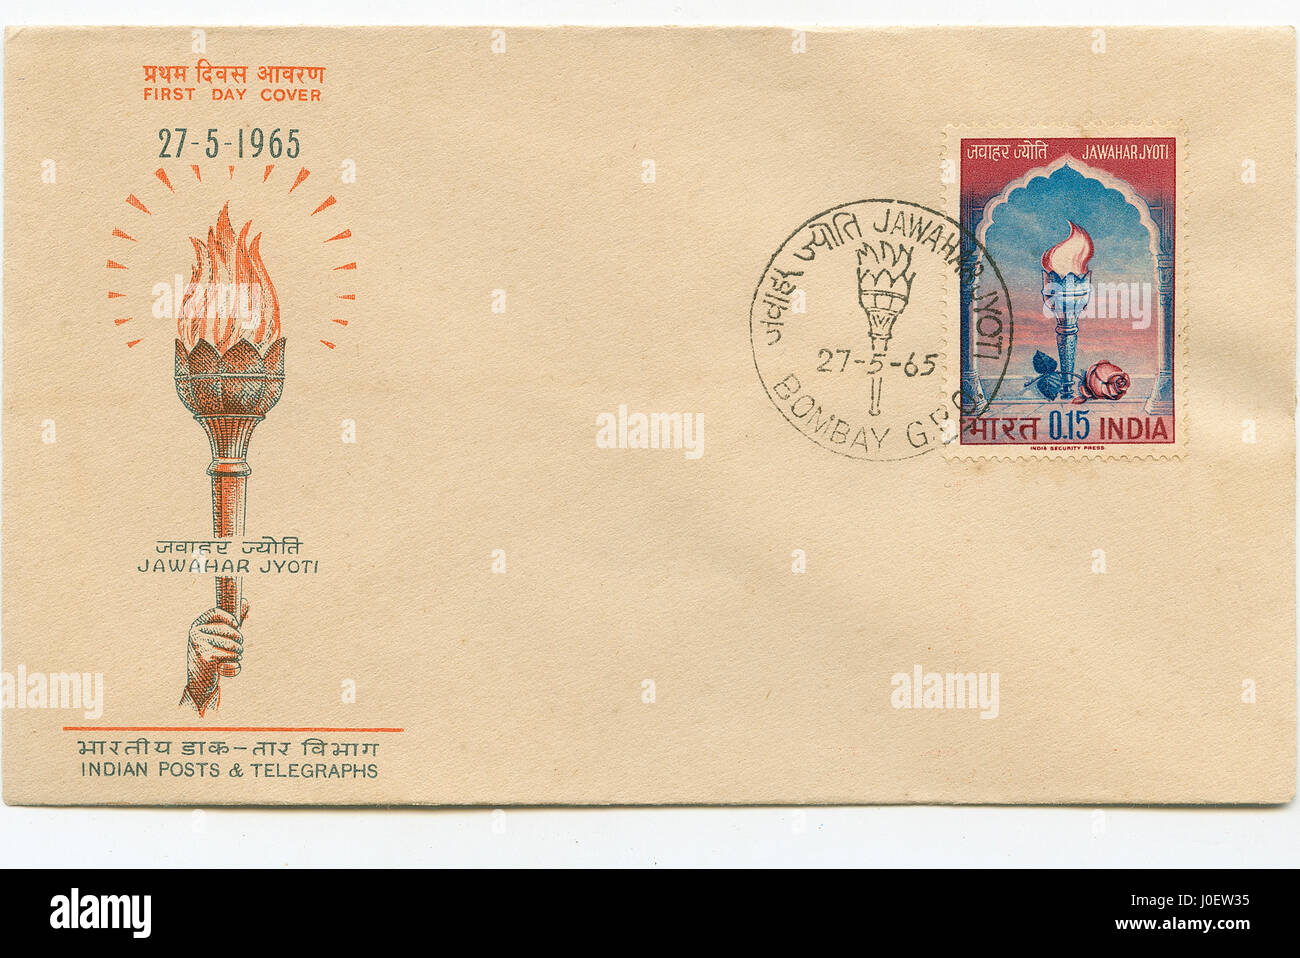 First day cover of jawahar jyoti, india, asia - Stock Image